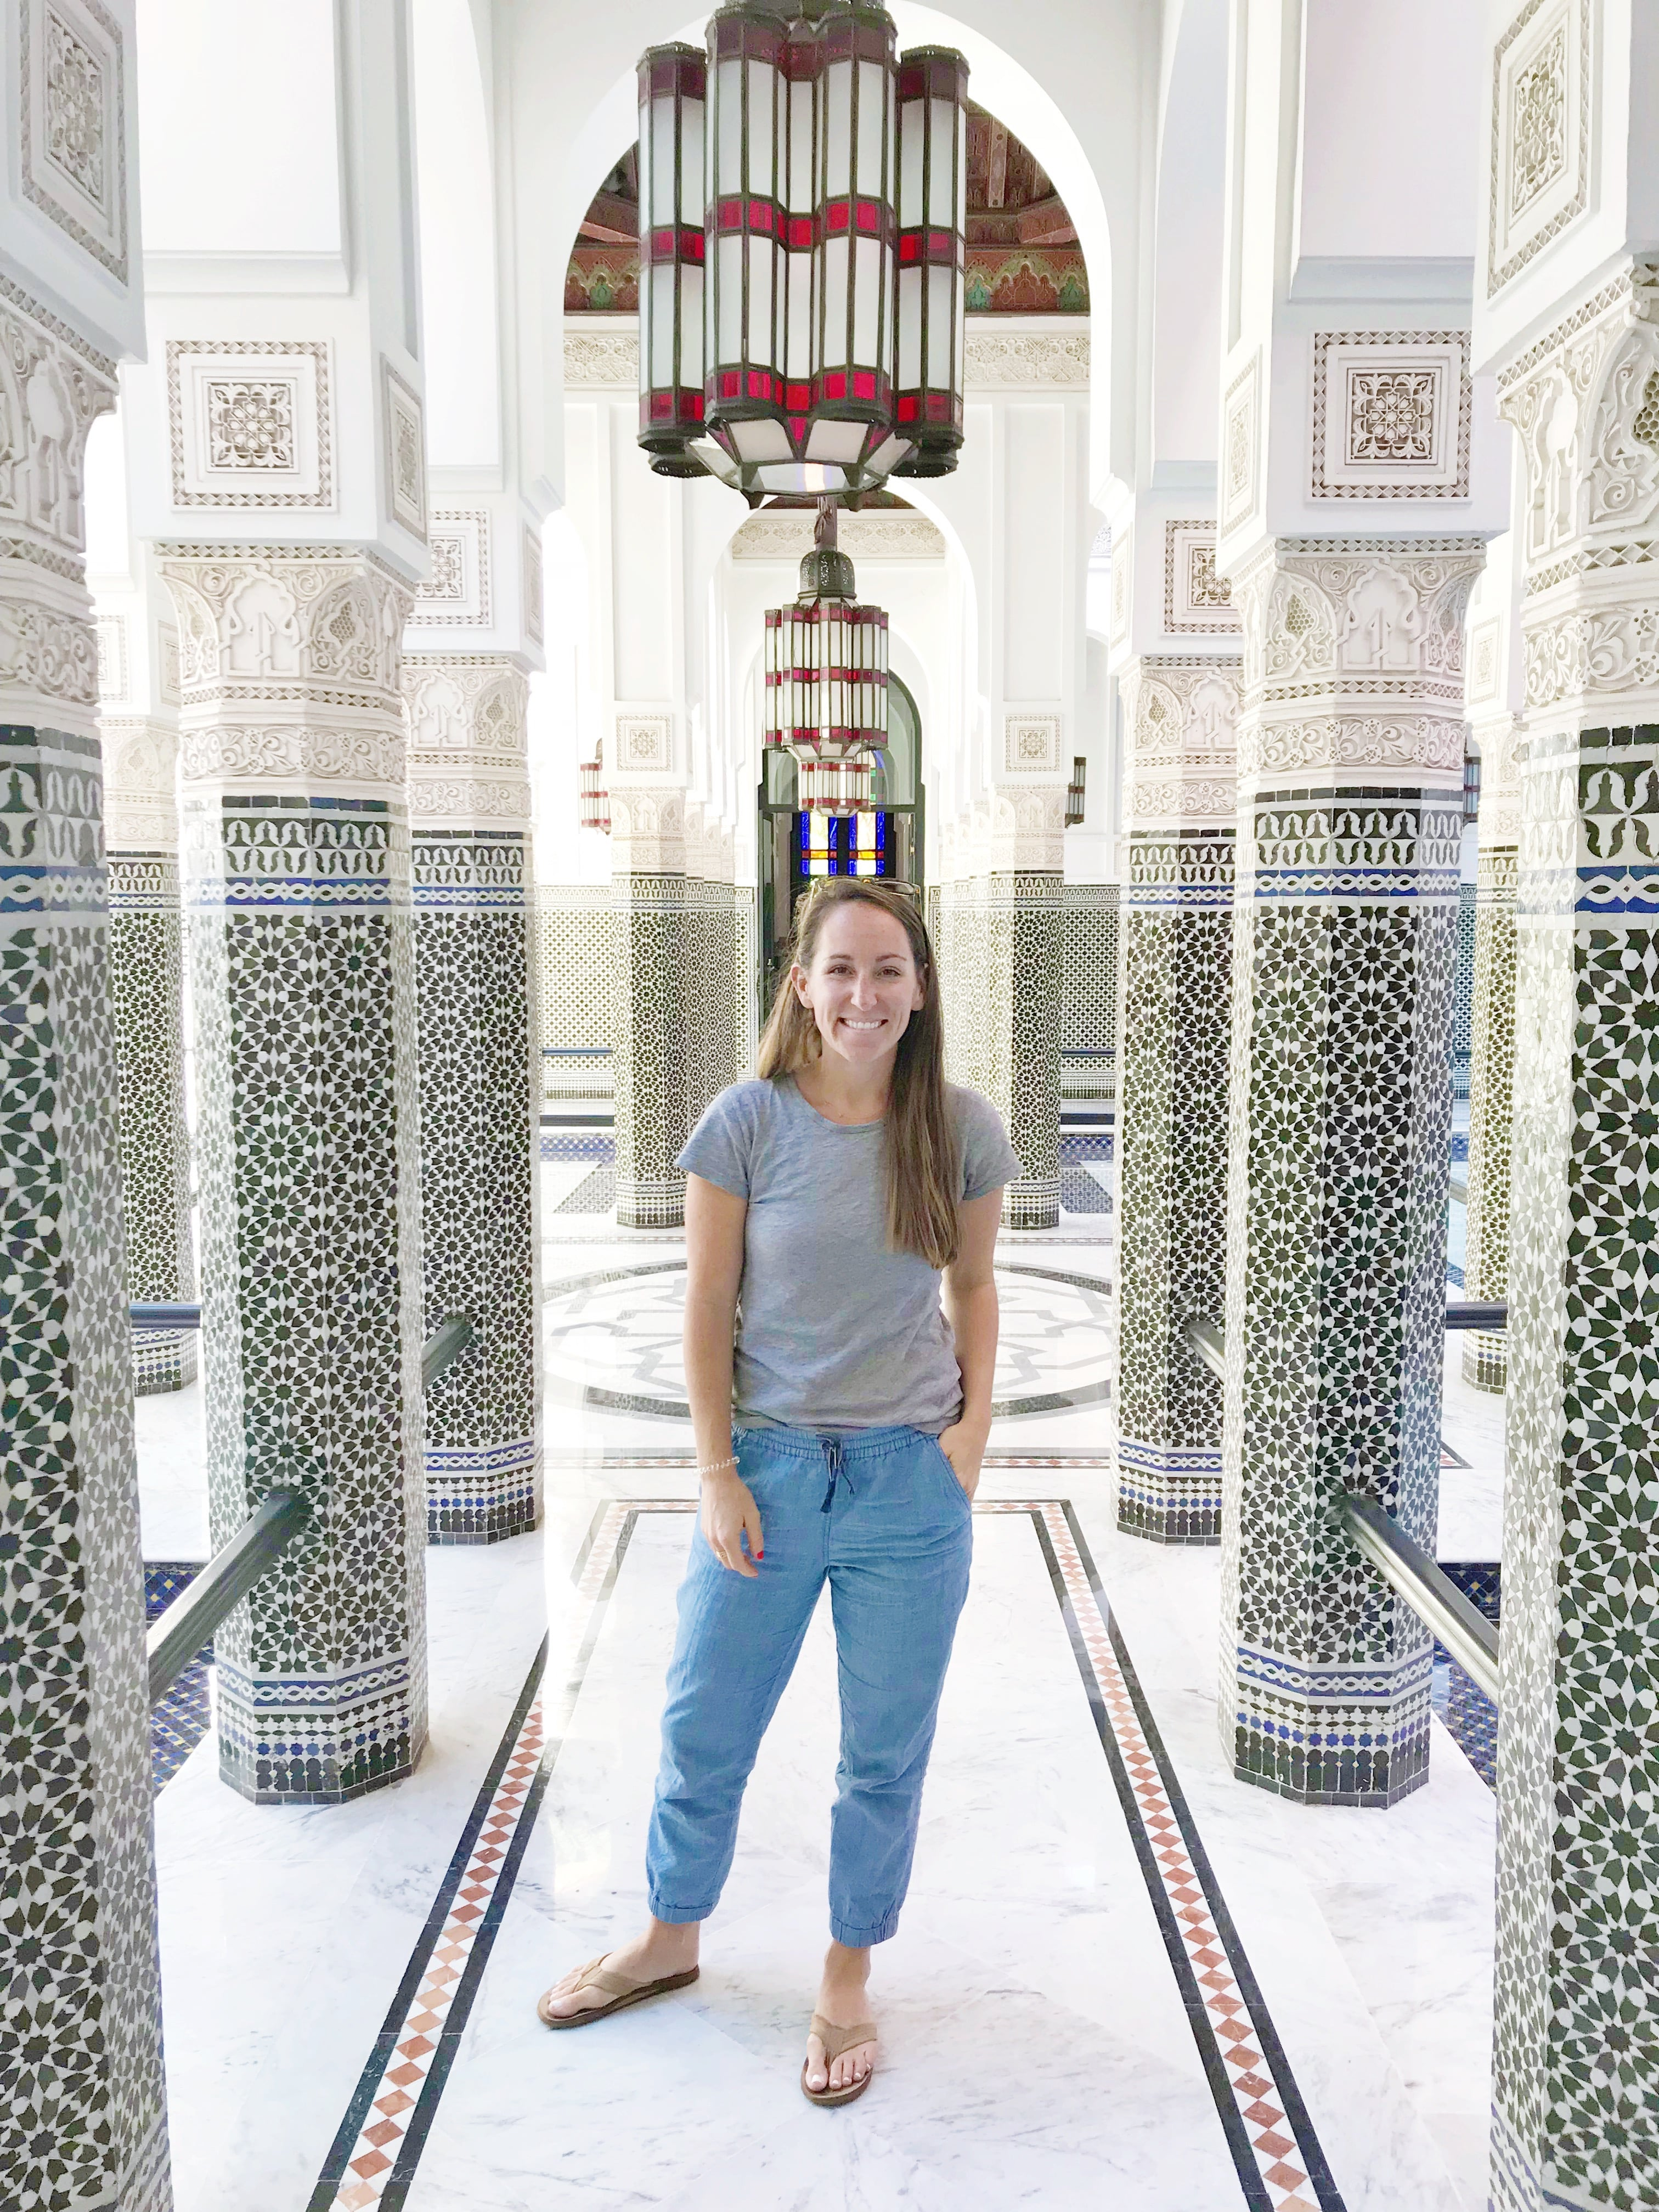 OUR STAY AT LA MAMOUNIA IN MARRAKECH | La Mamounia - La Mamounia Marrakech - La Mamounia Spa - Hotel La Mamounia - La Mamounia Hotel - Mamounia - Morocco Hotels - Marrakech Hotels - Morocco Travel Blog - La Mamounia Review - Hotel Review Morocco - Morocco Travel Blog #morocco #travelblog #marrakech